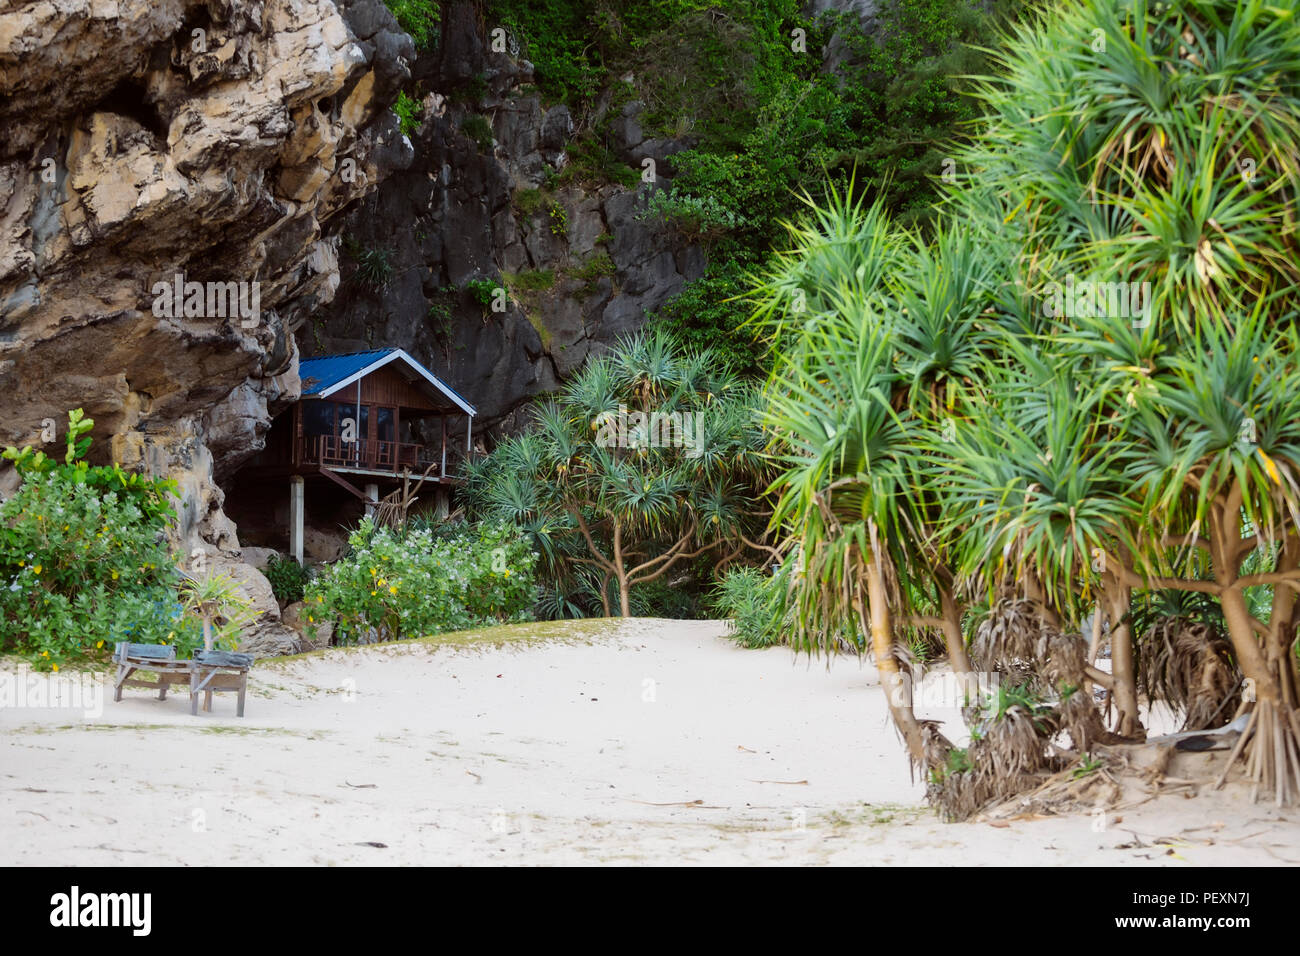 Bungalow near cliff on beach with palm trees, Banda Aceh, Sumatra, Indonesia - Stock Image